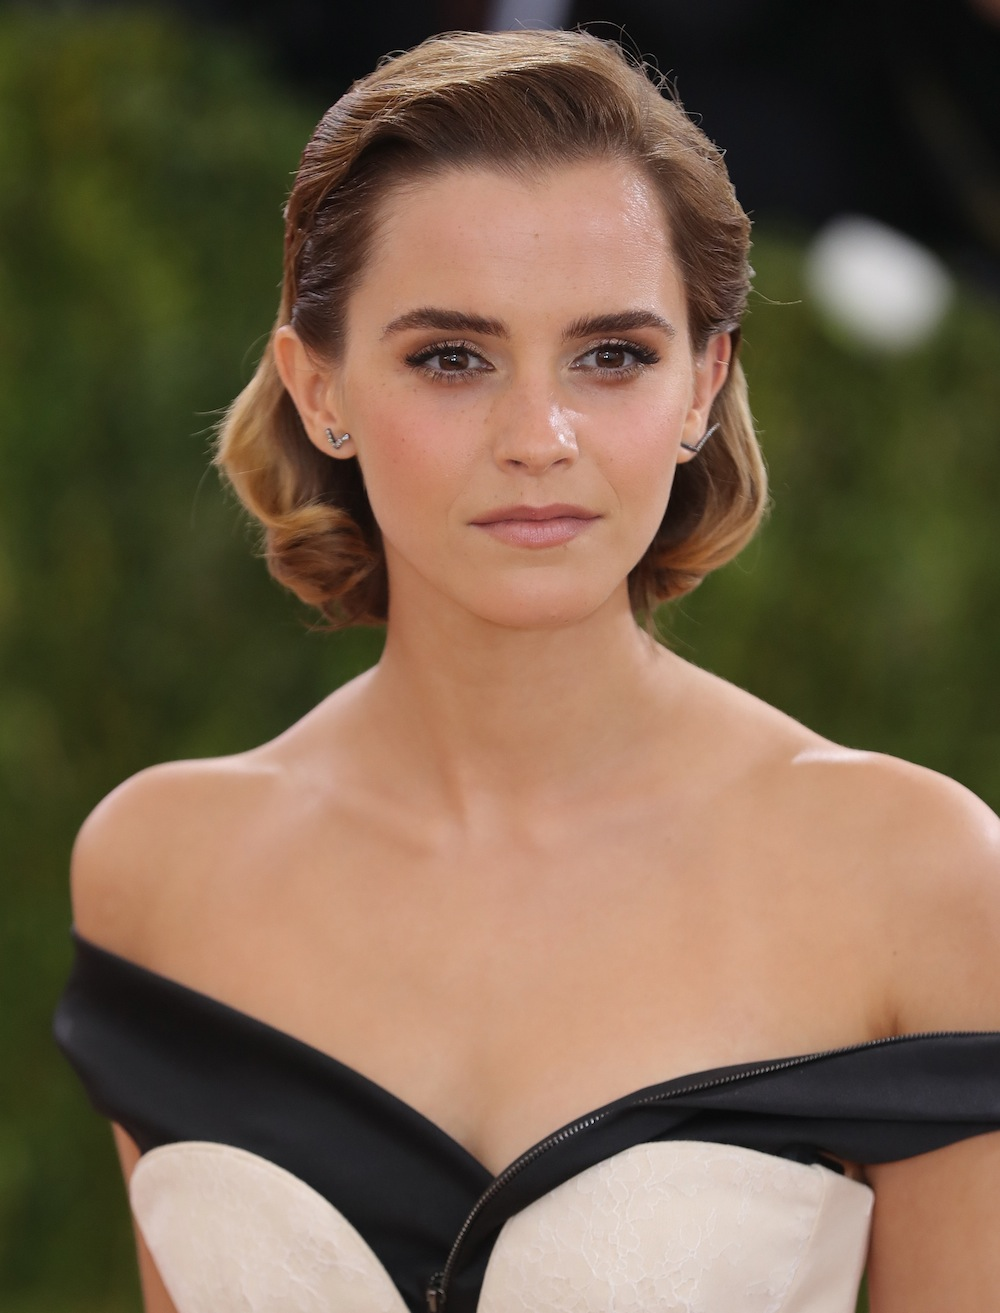 Emma Watson 20 Stunning Photos That Will Blow Your Mind Away